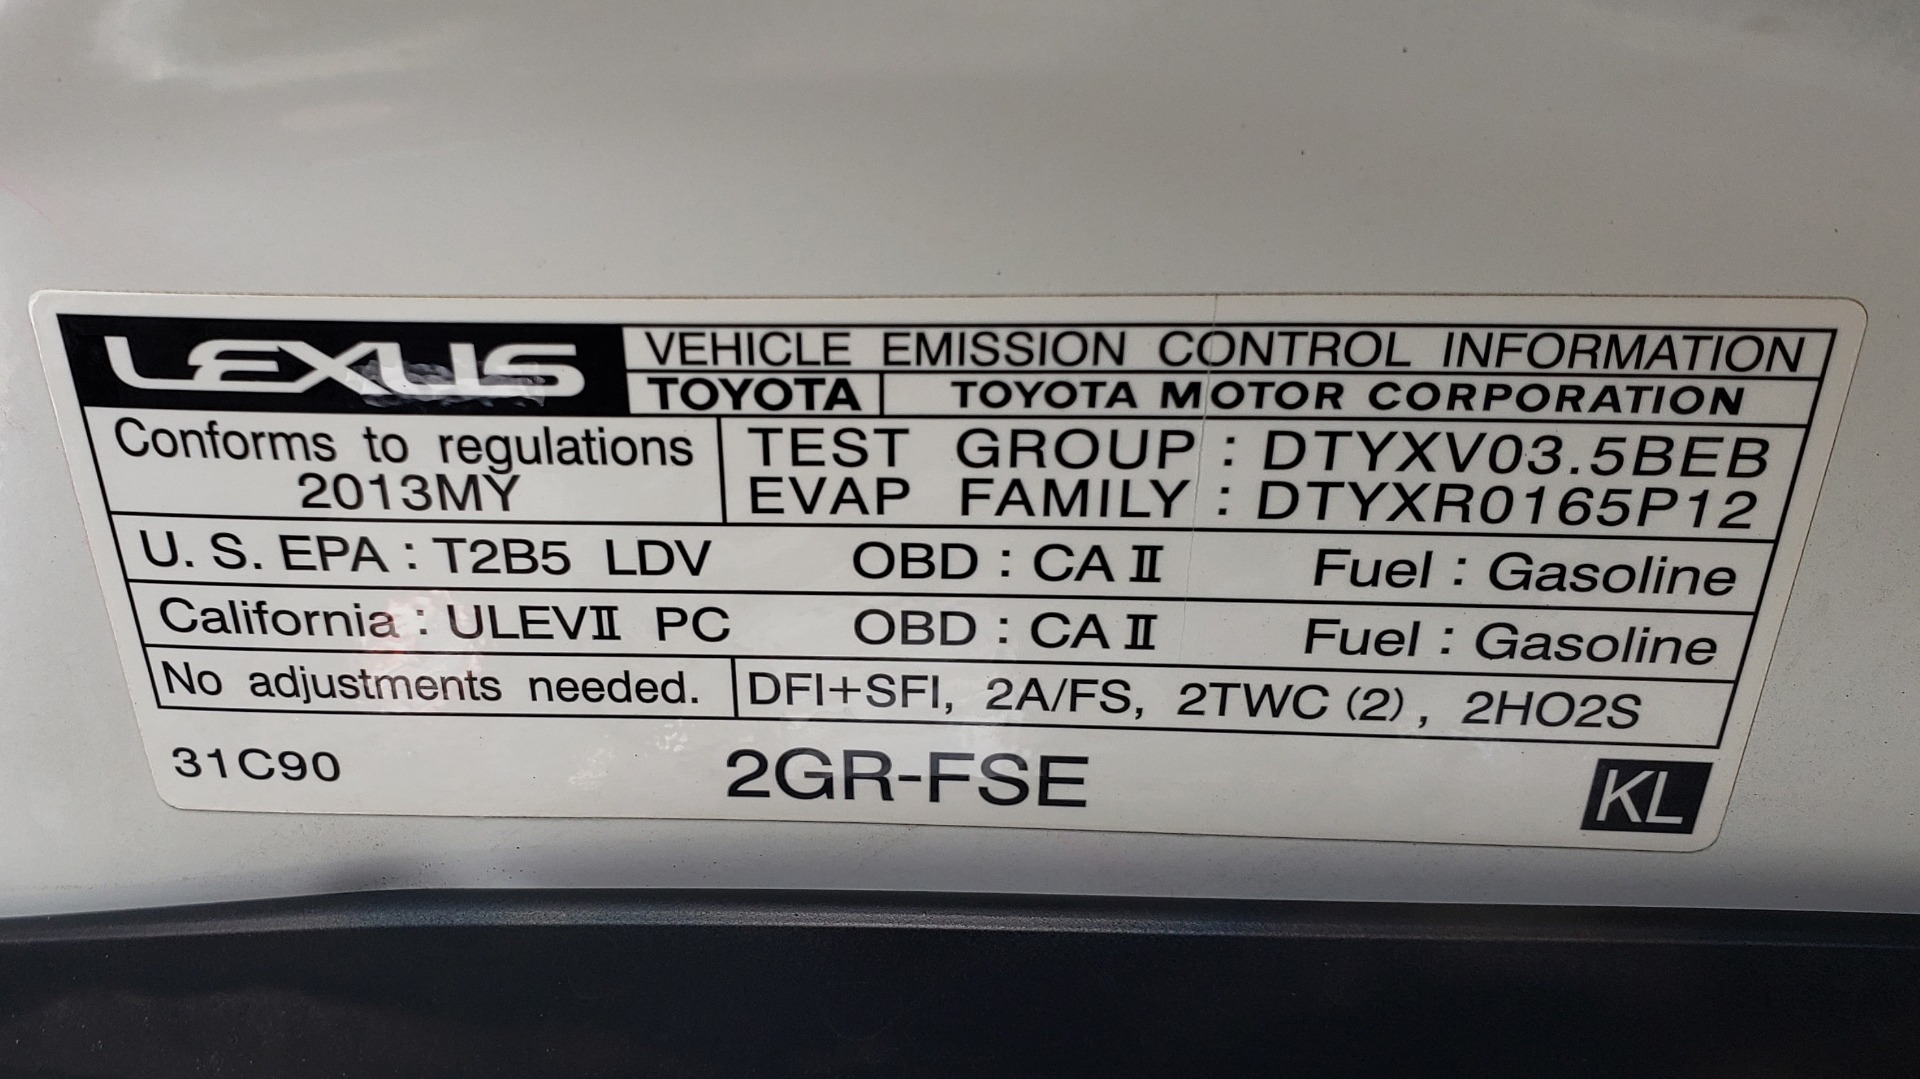 Used 2013 Lexus GS 350 F-SPORT / NAV / SUNROOF / BSM / PRK ASST / REARVIEW for sale Sold at Formula Imports in Charlotte NC 28227 12